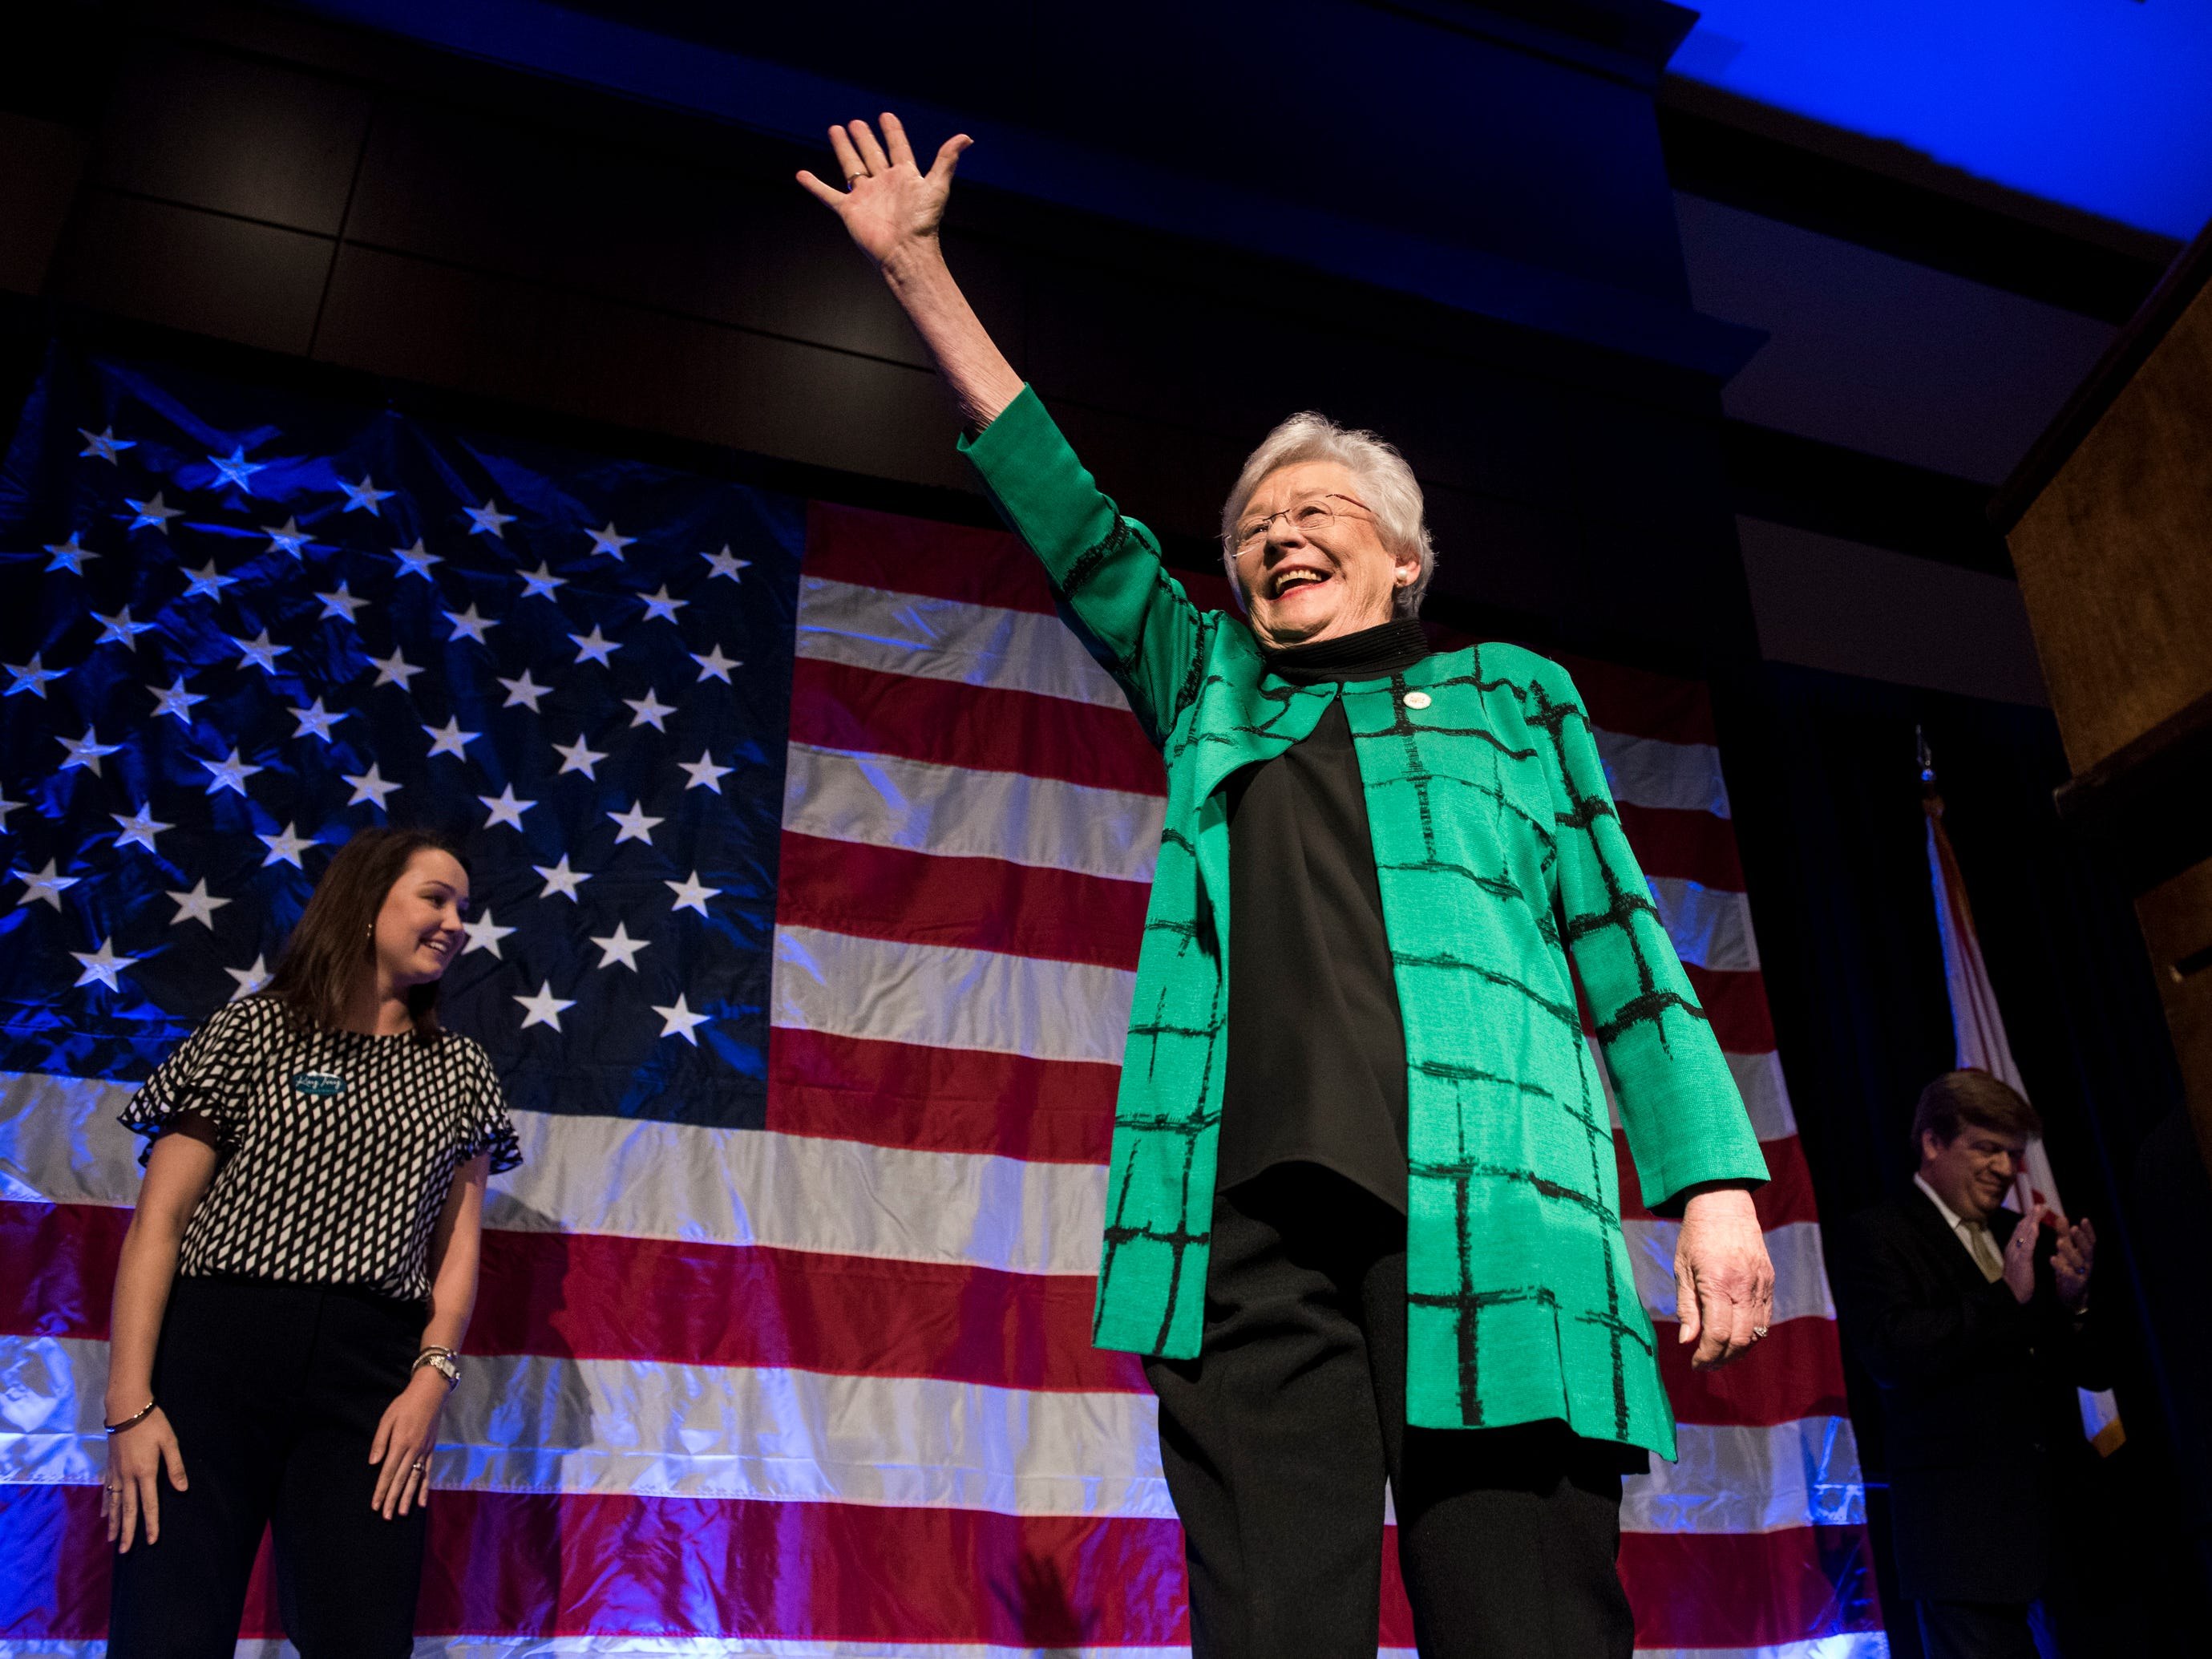 Gov. Kay Ivey delivers her acceptance speech at the Renaissance Hotel in Montgomery, Ala., on Tuesday, Nov. 6, 2018.